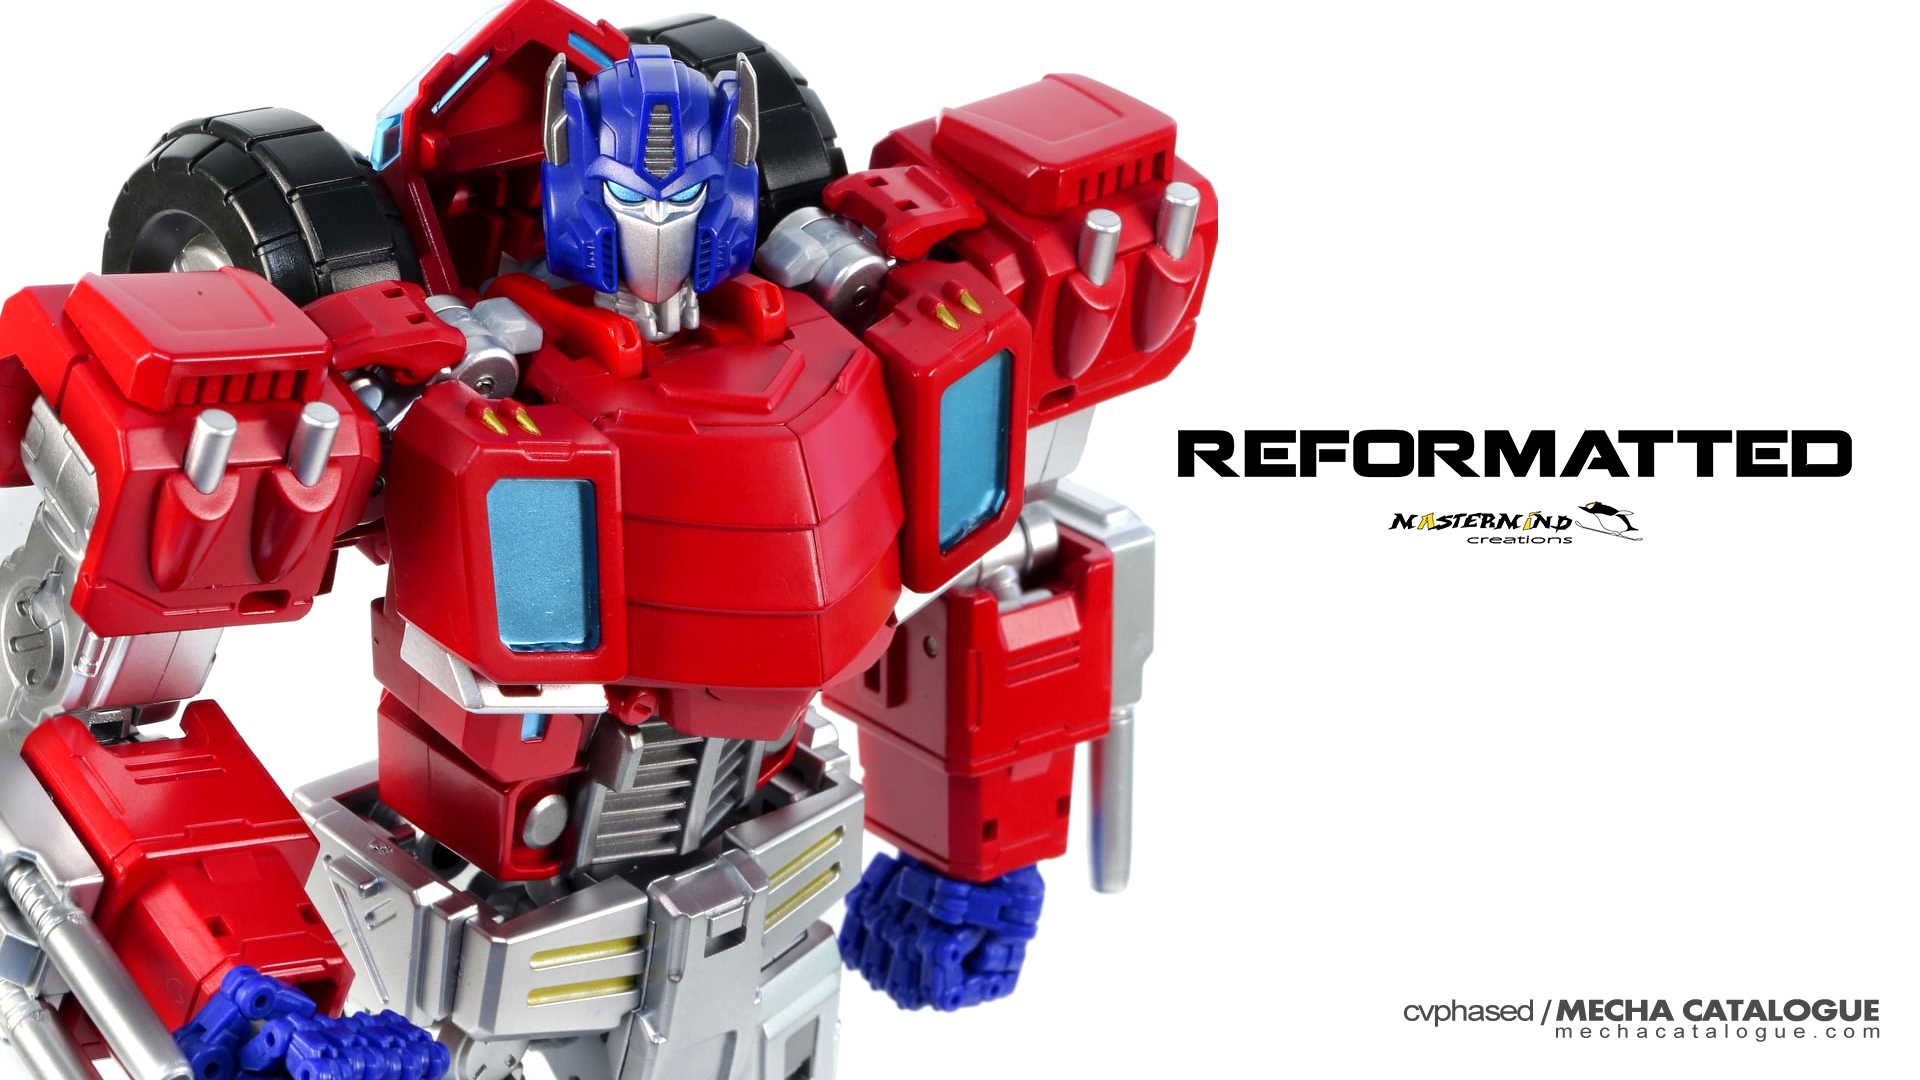 So Articulated, But Still Transforms! Mastermind Creations Reformatted OPTUS PEXUS